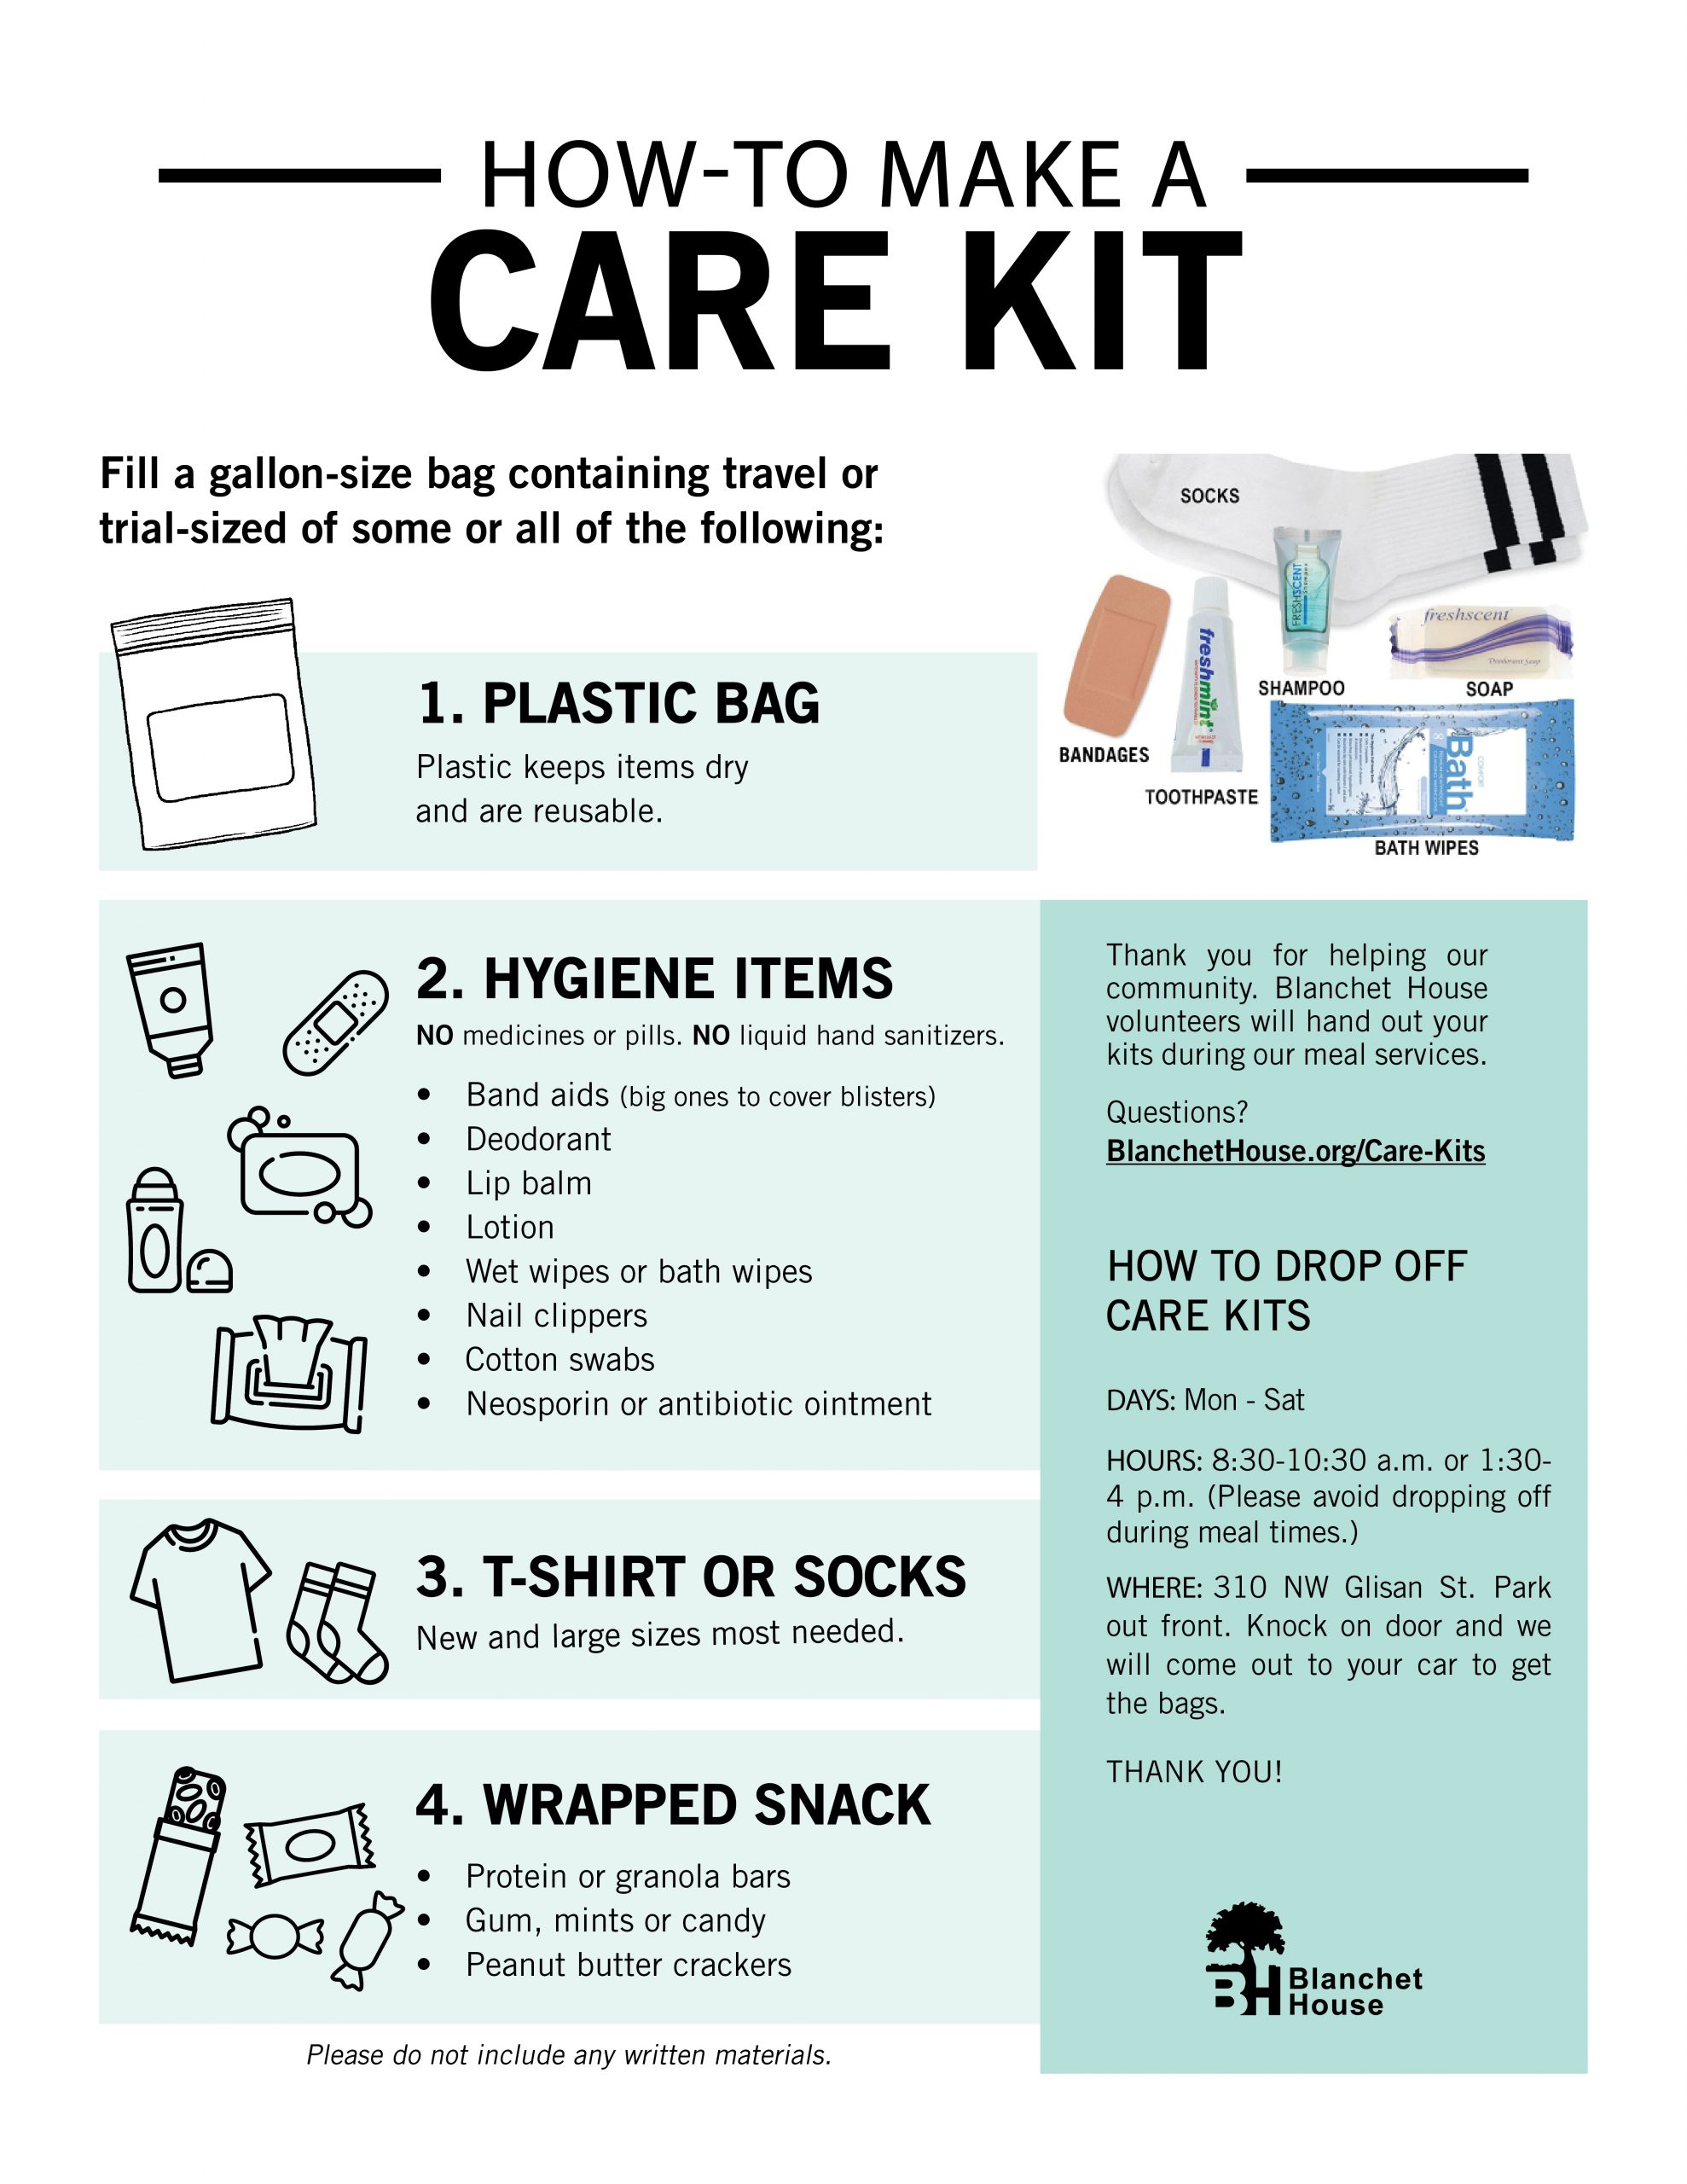 How to Make Care Kits for the Homeless